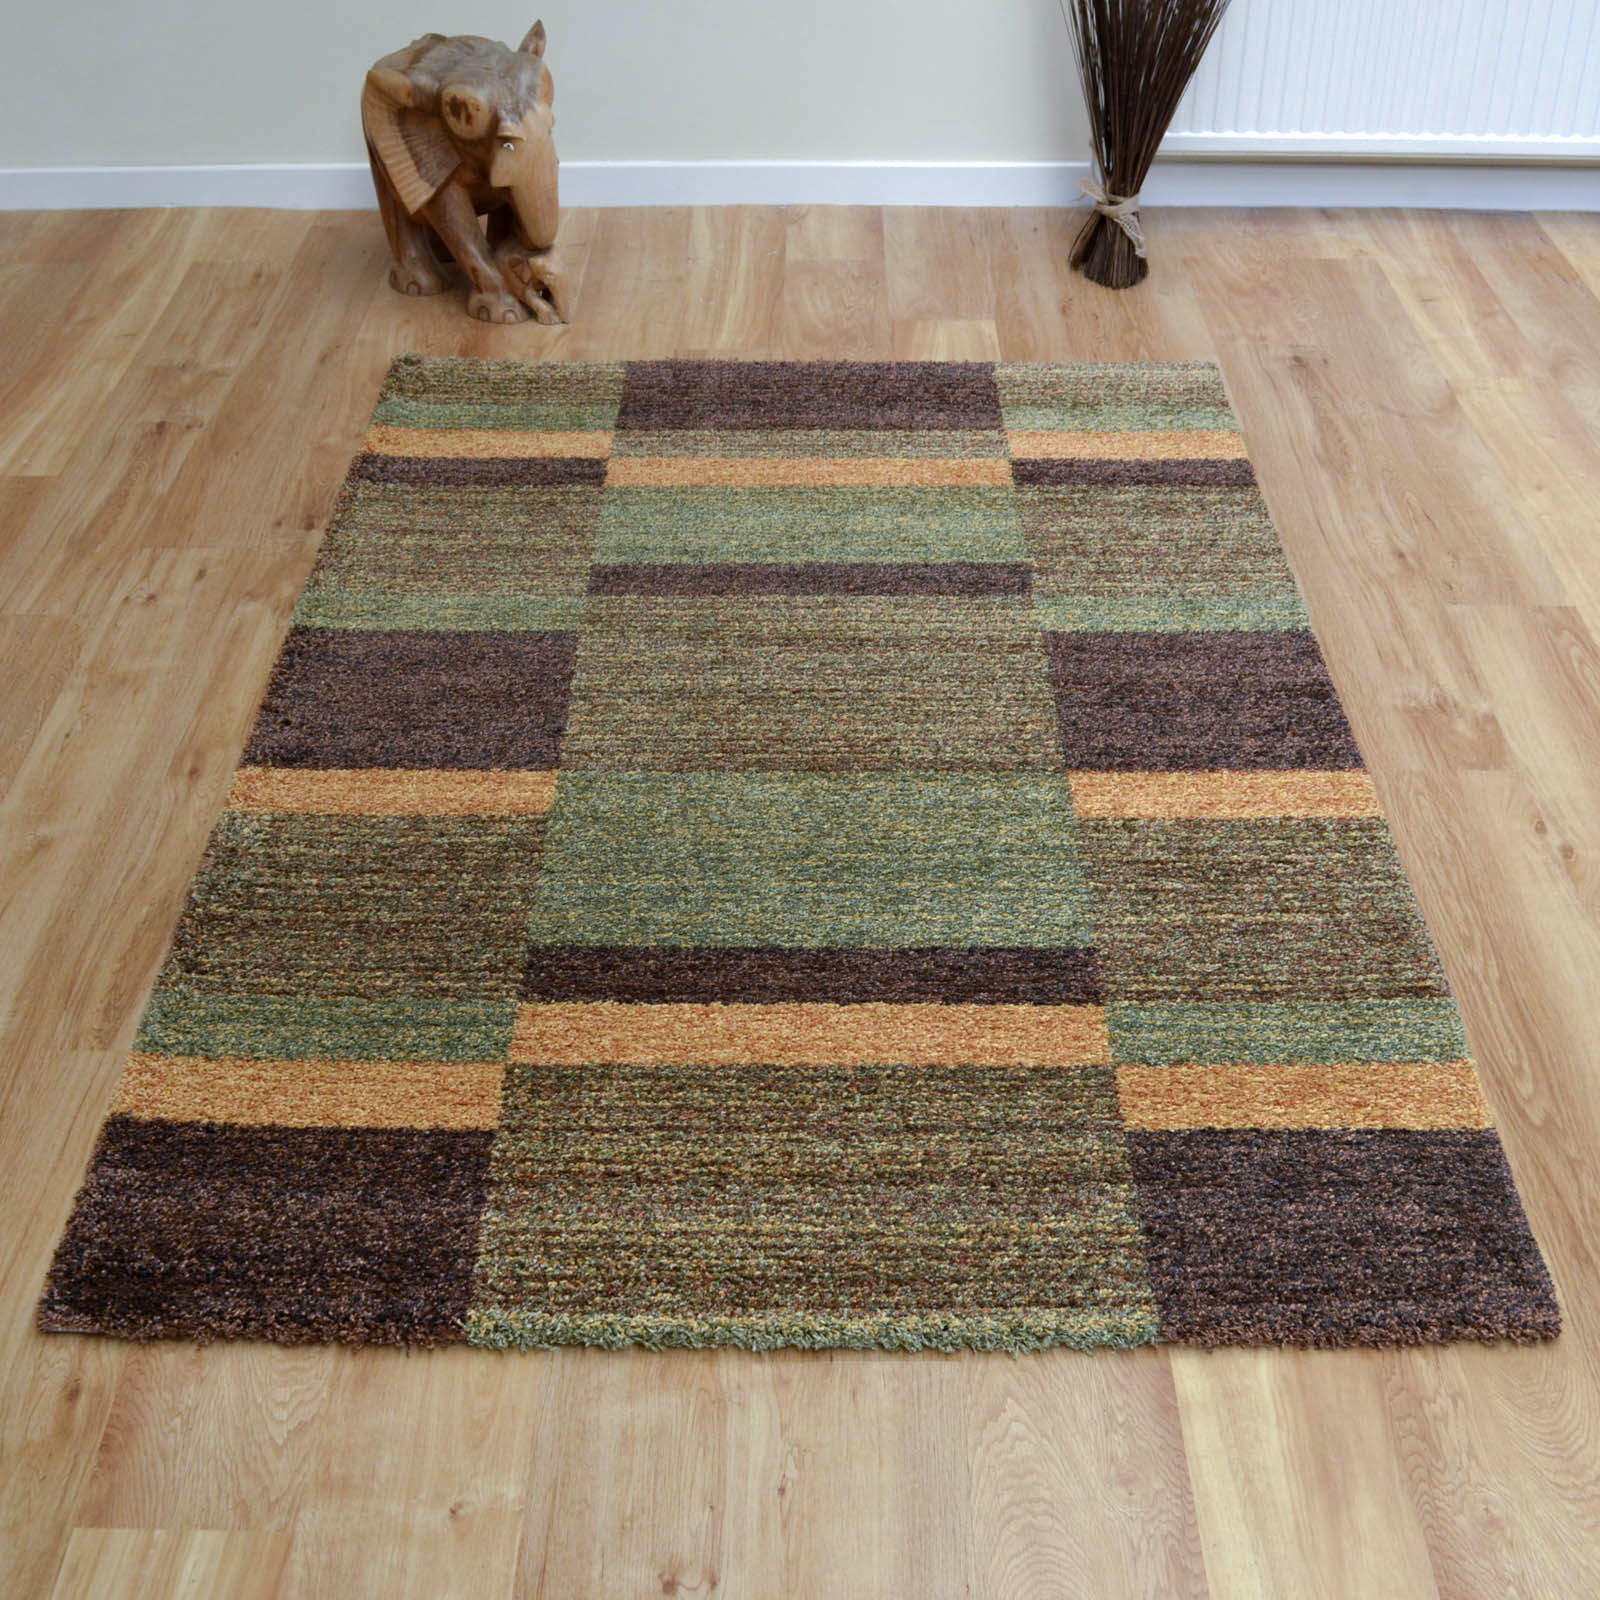 Mehari Rugs 23024 4515 in Green